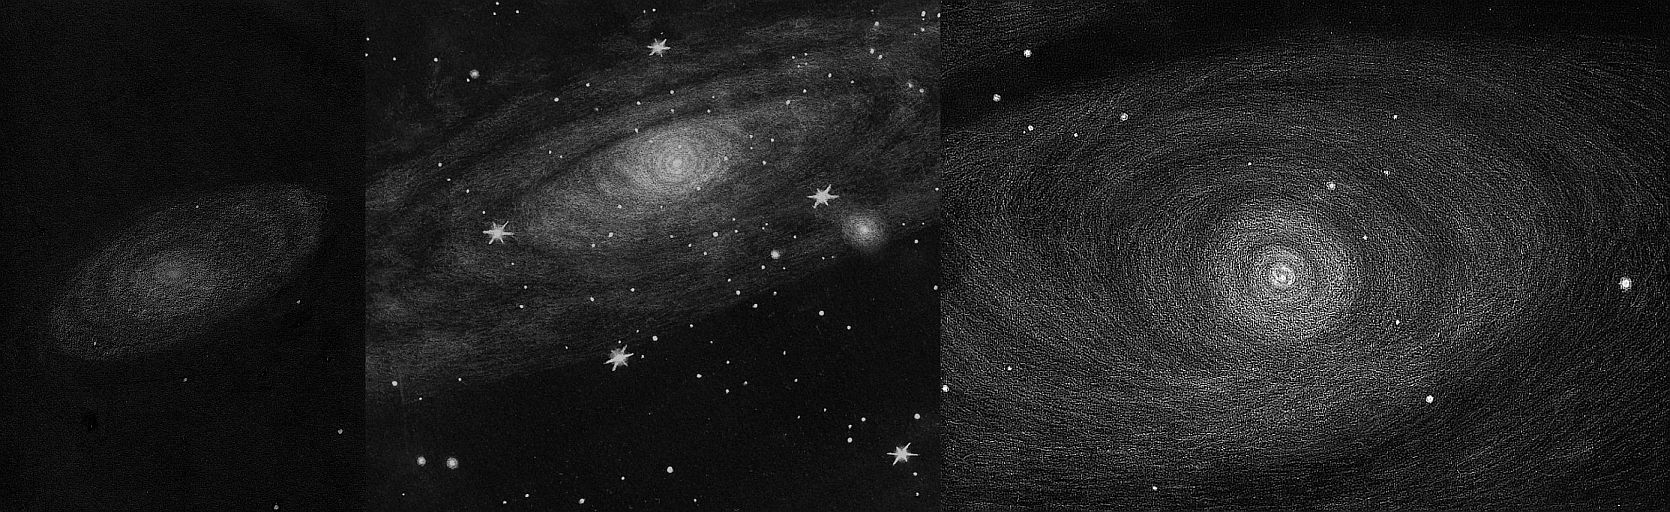 zoom-in-center-of-m31